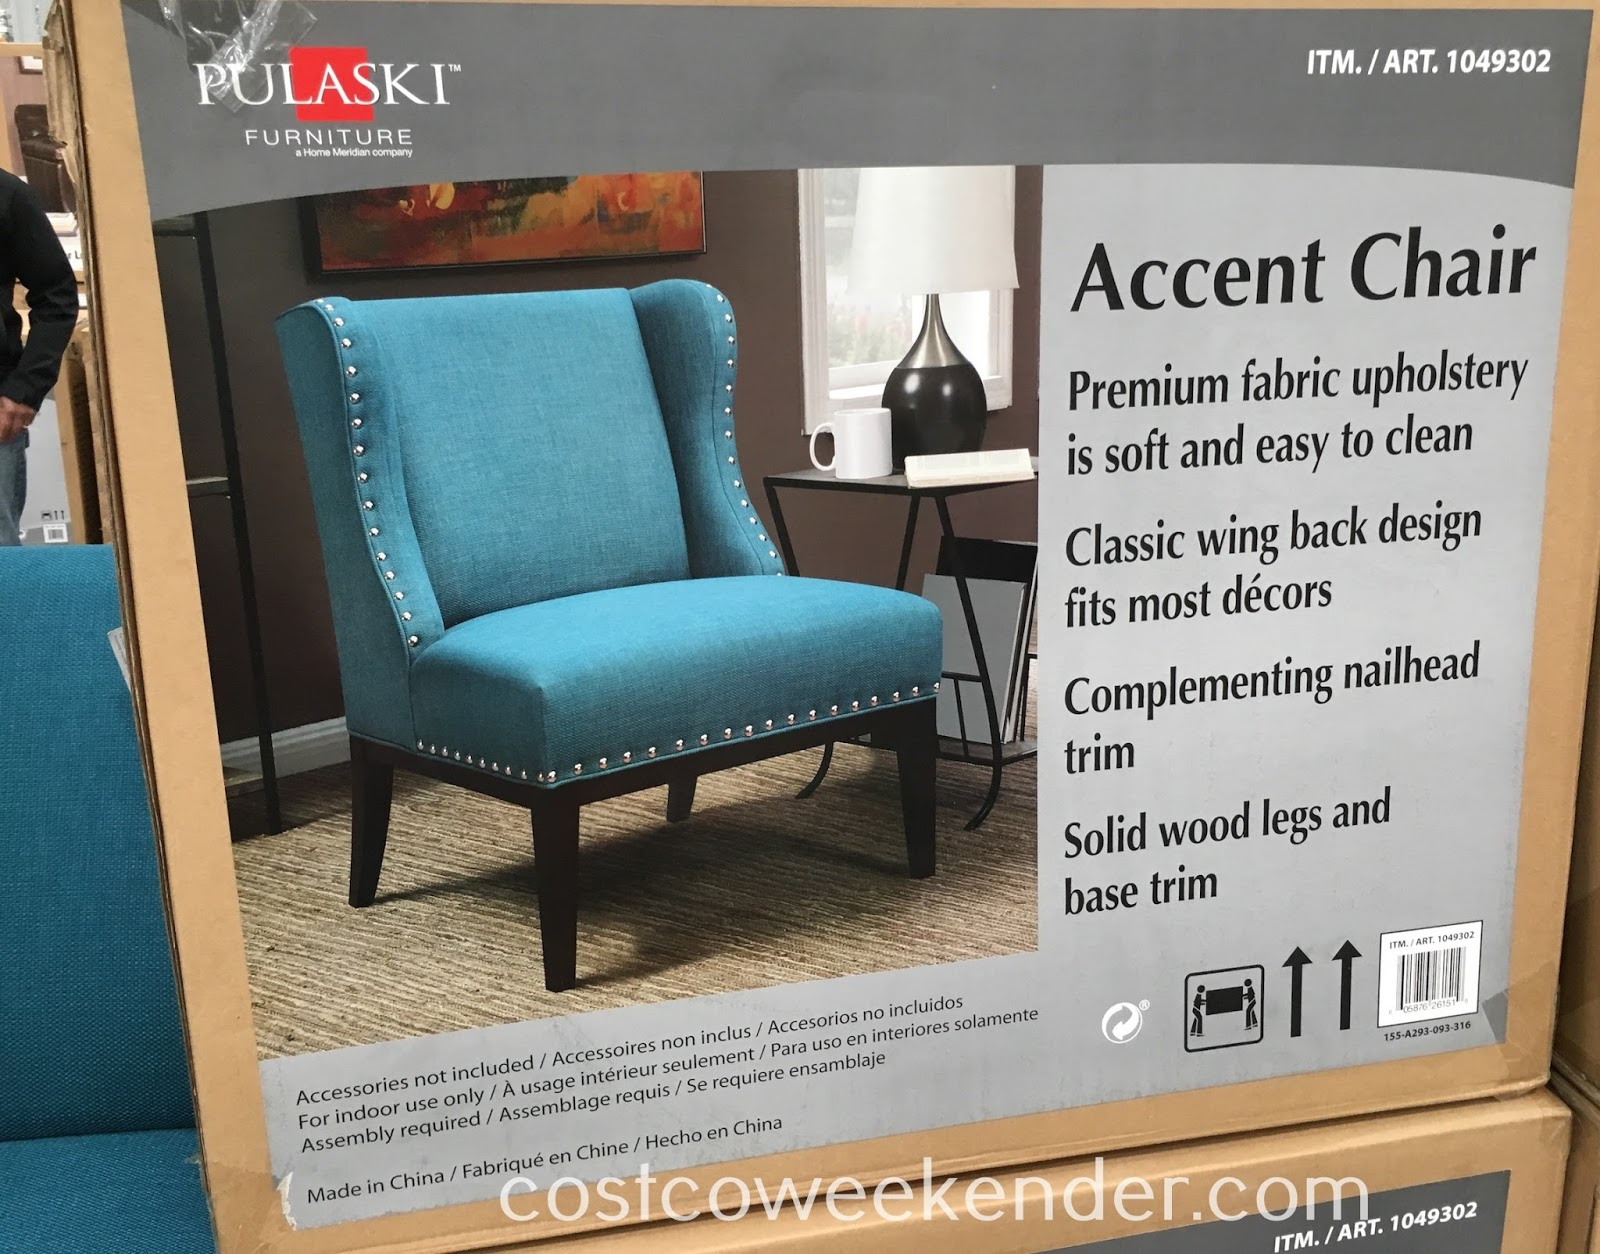 Accent Chairs At Costco Pulaski Furniture Fabric Accent Chair Costco Weekender